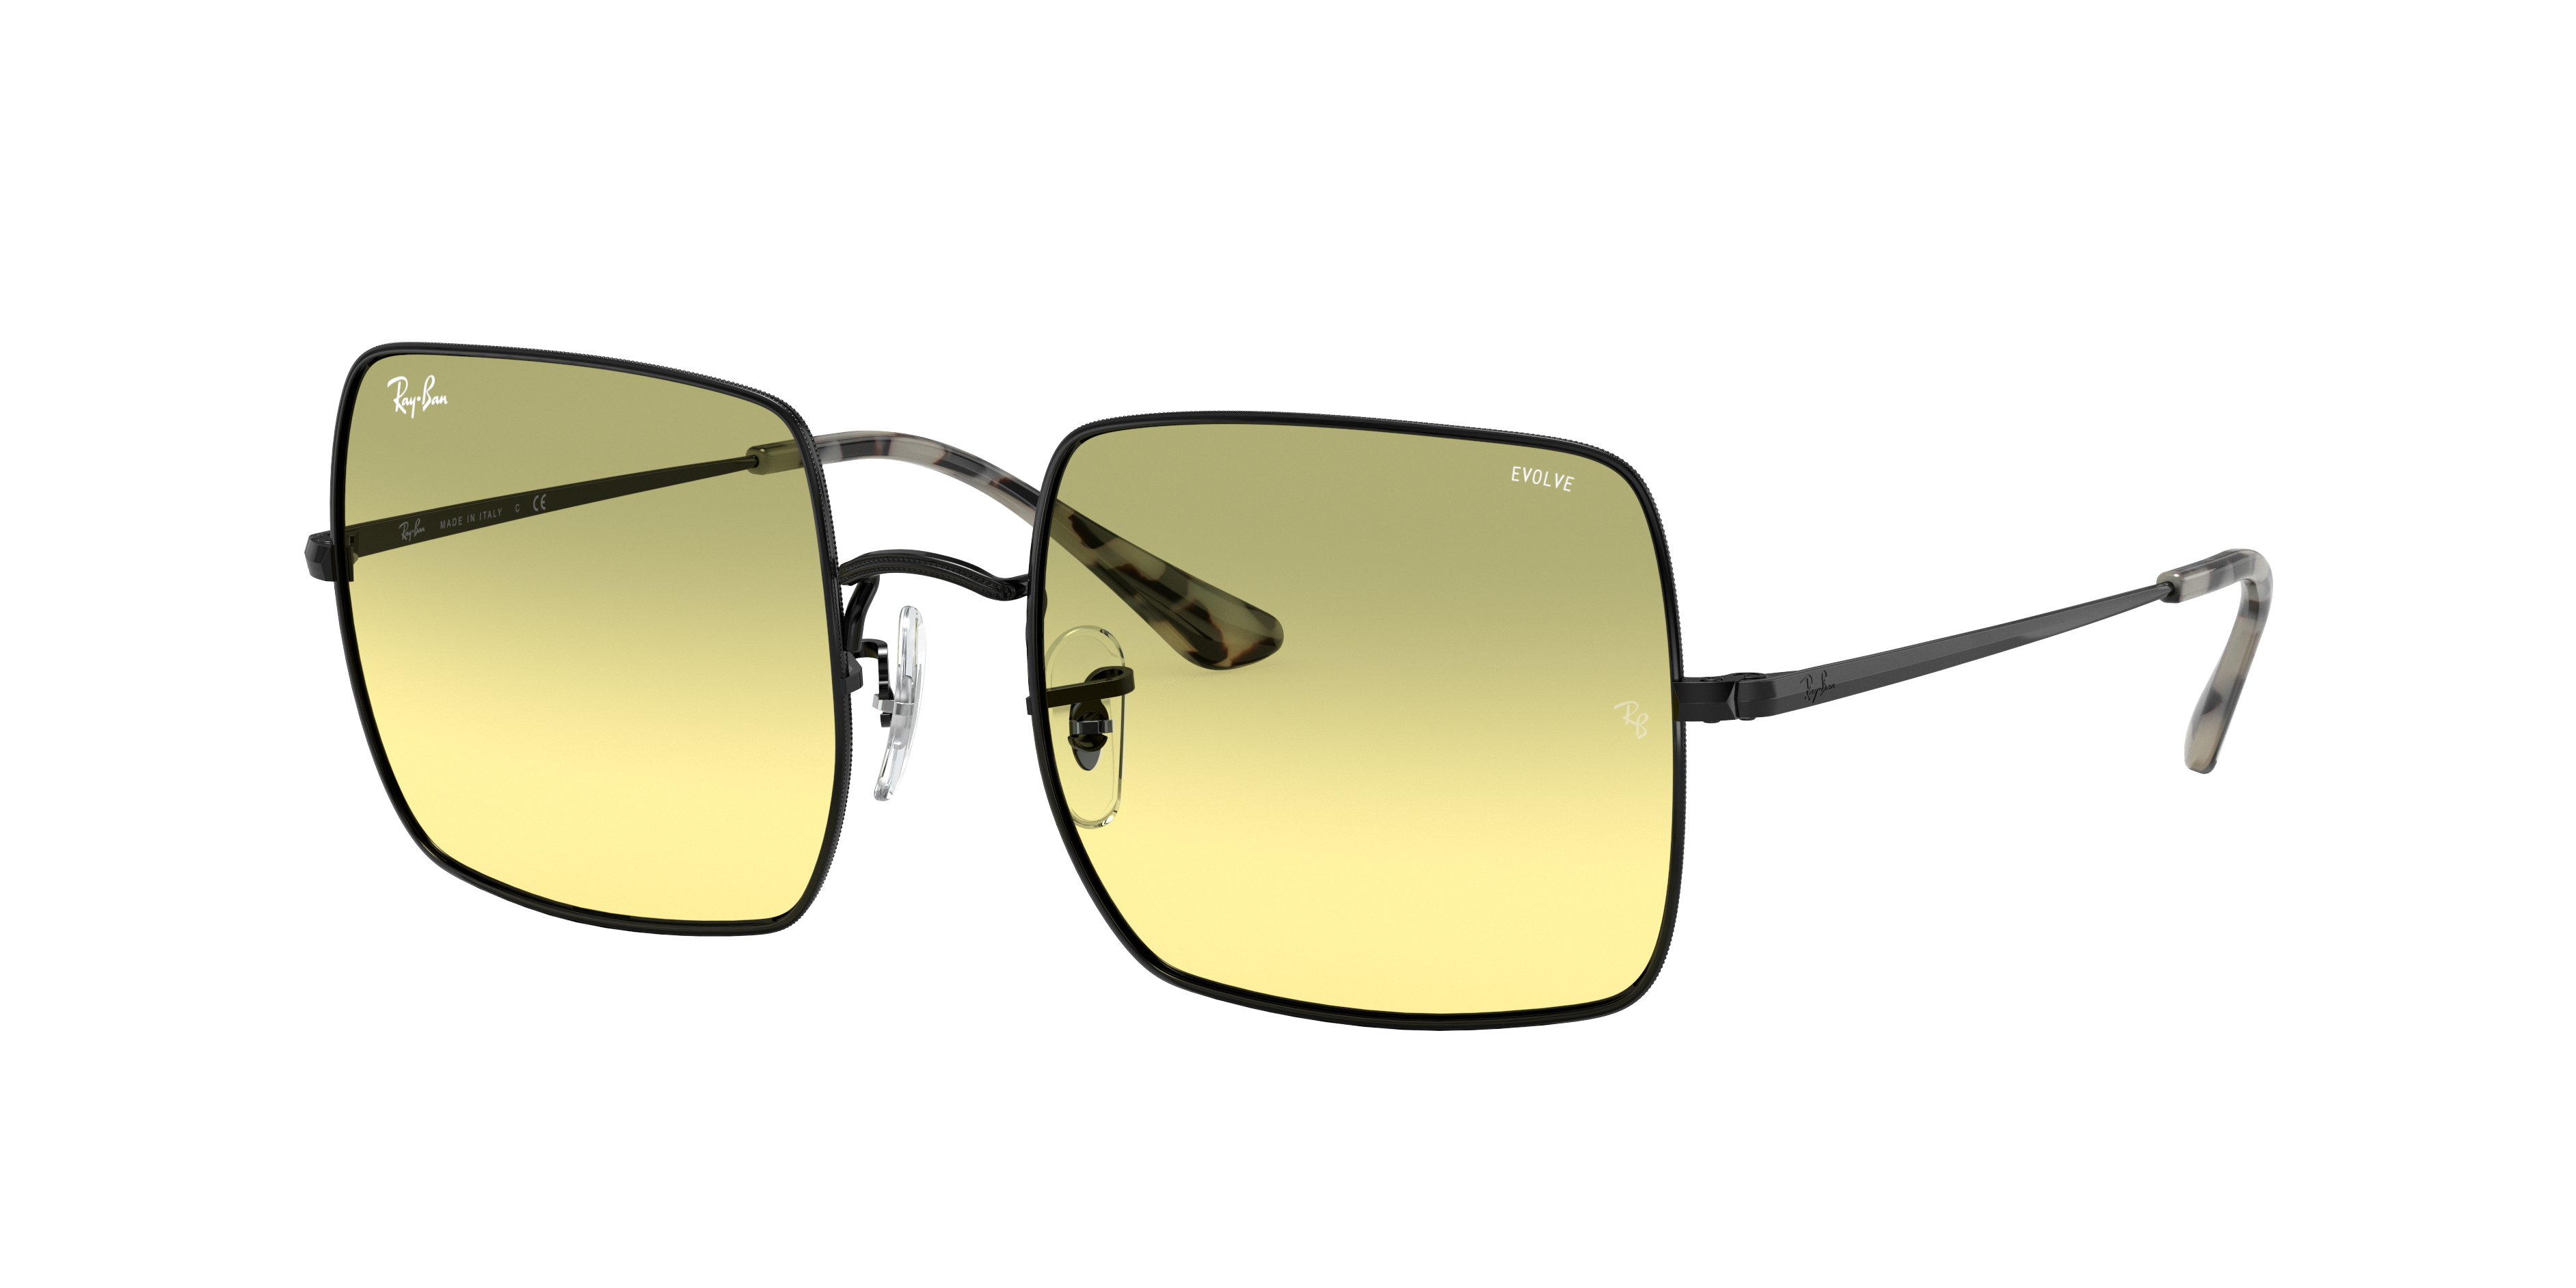 Ray-Ban Square 1971 Washed Evolve Black, Yellow Lenses - RB1971